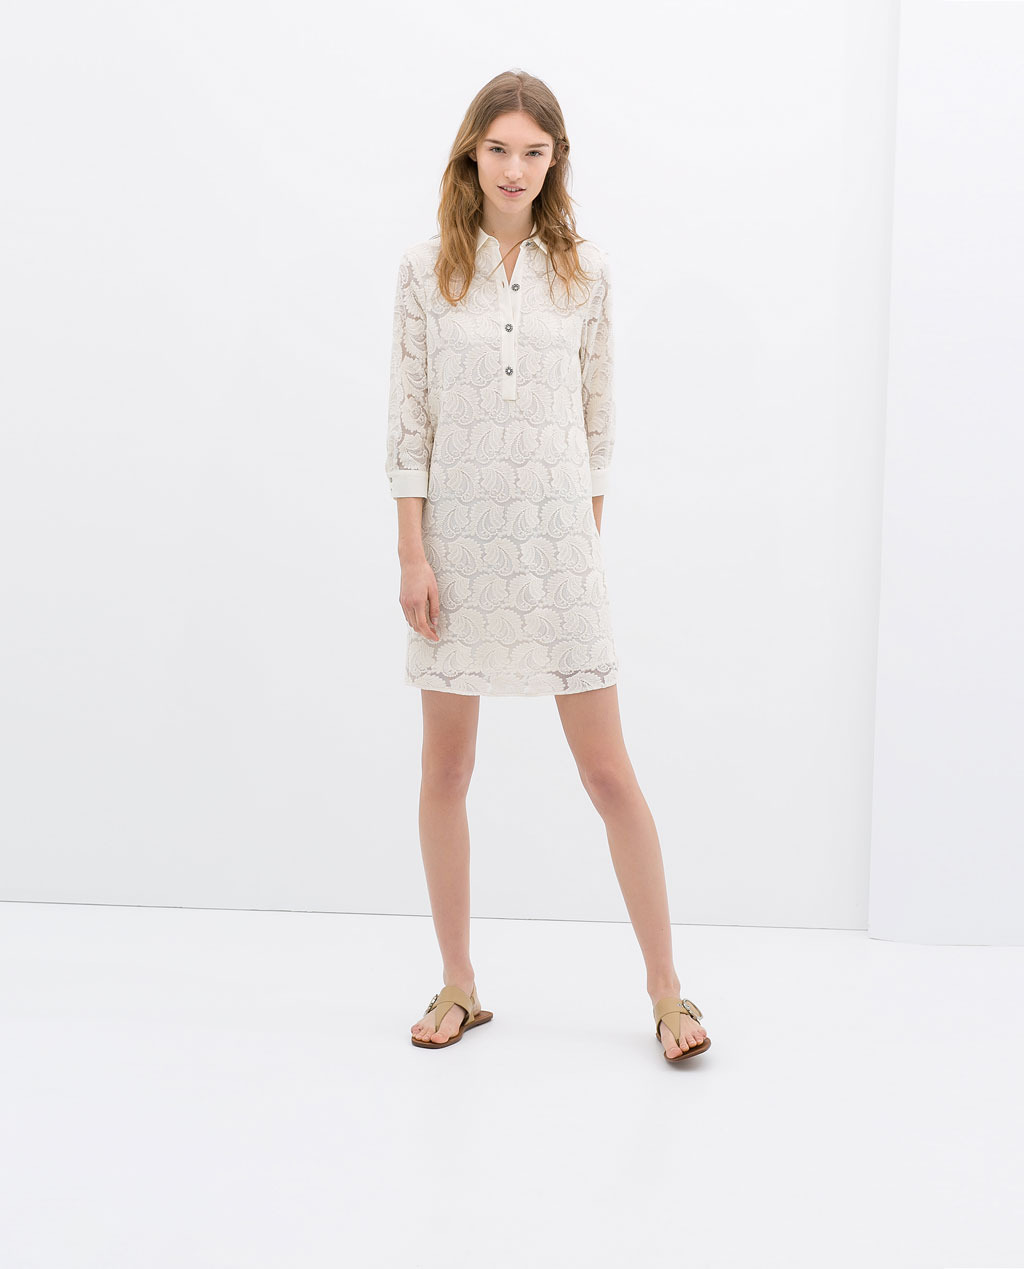 Dress With Jewel Buttons - style: shift; length: mid thigh; neckline: shirt collar/peter pan/zip with opening; bust detail: buttons at bust (in middle at breastbone)/zip detail at bust; predominant colour: ivory/cream; occasions: casual, evening, holiday, creative work; fit: straight cut; fibres: cotton - mix; sleeve length: 3/4 length; sleeve style: standard; texture group: lace; pattern type: fabric; pattern size: big & busy; pattern: patterned/print; trends: lace; season: s/s 2014